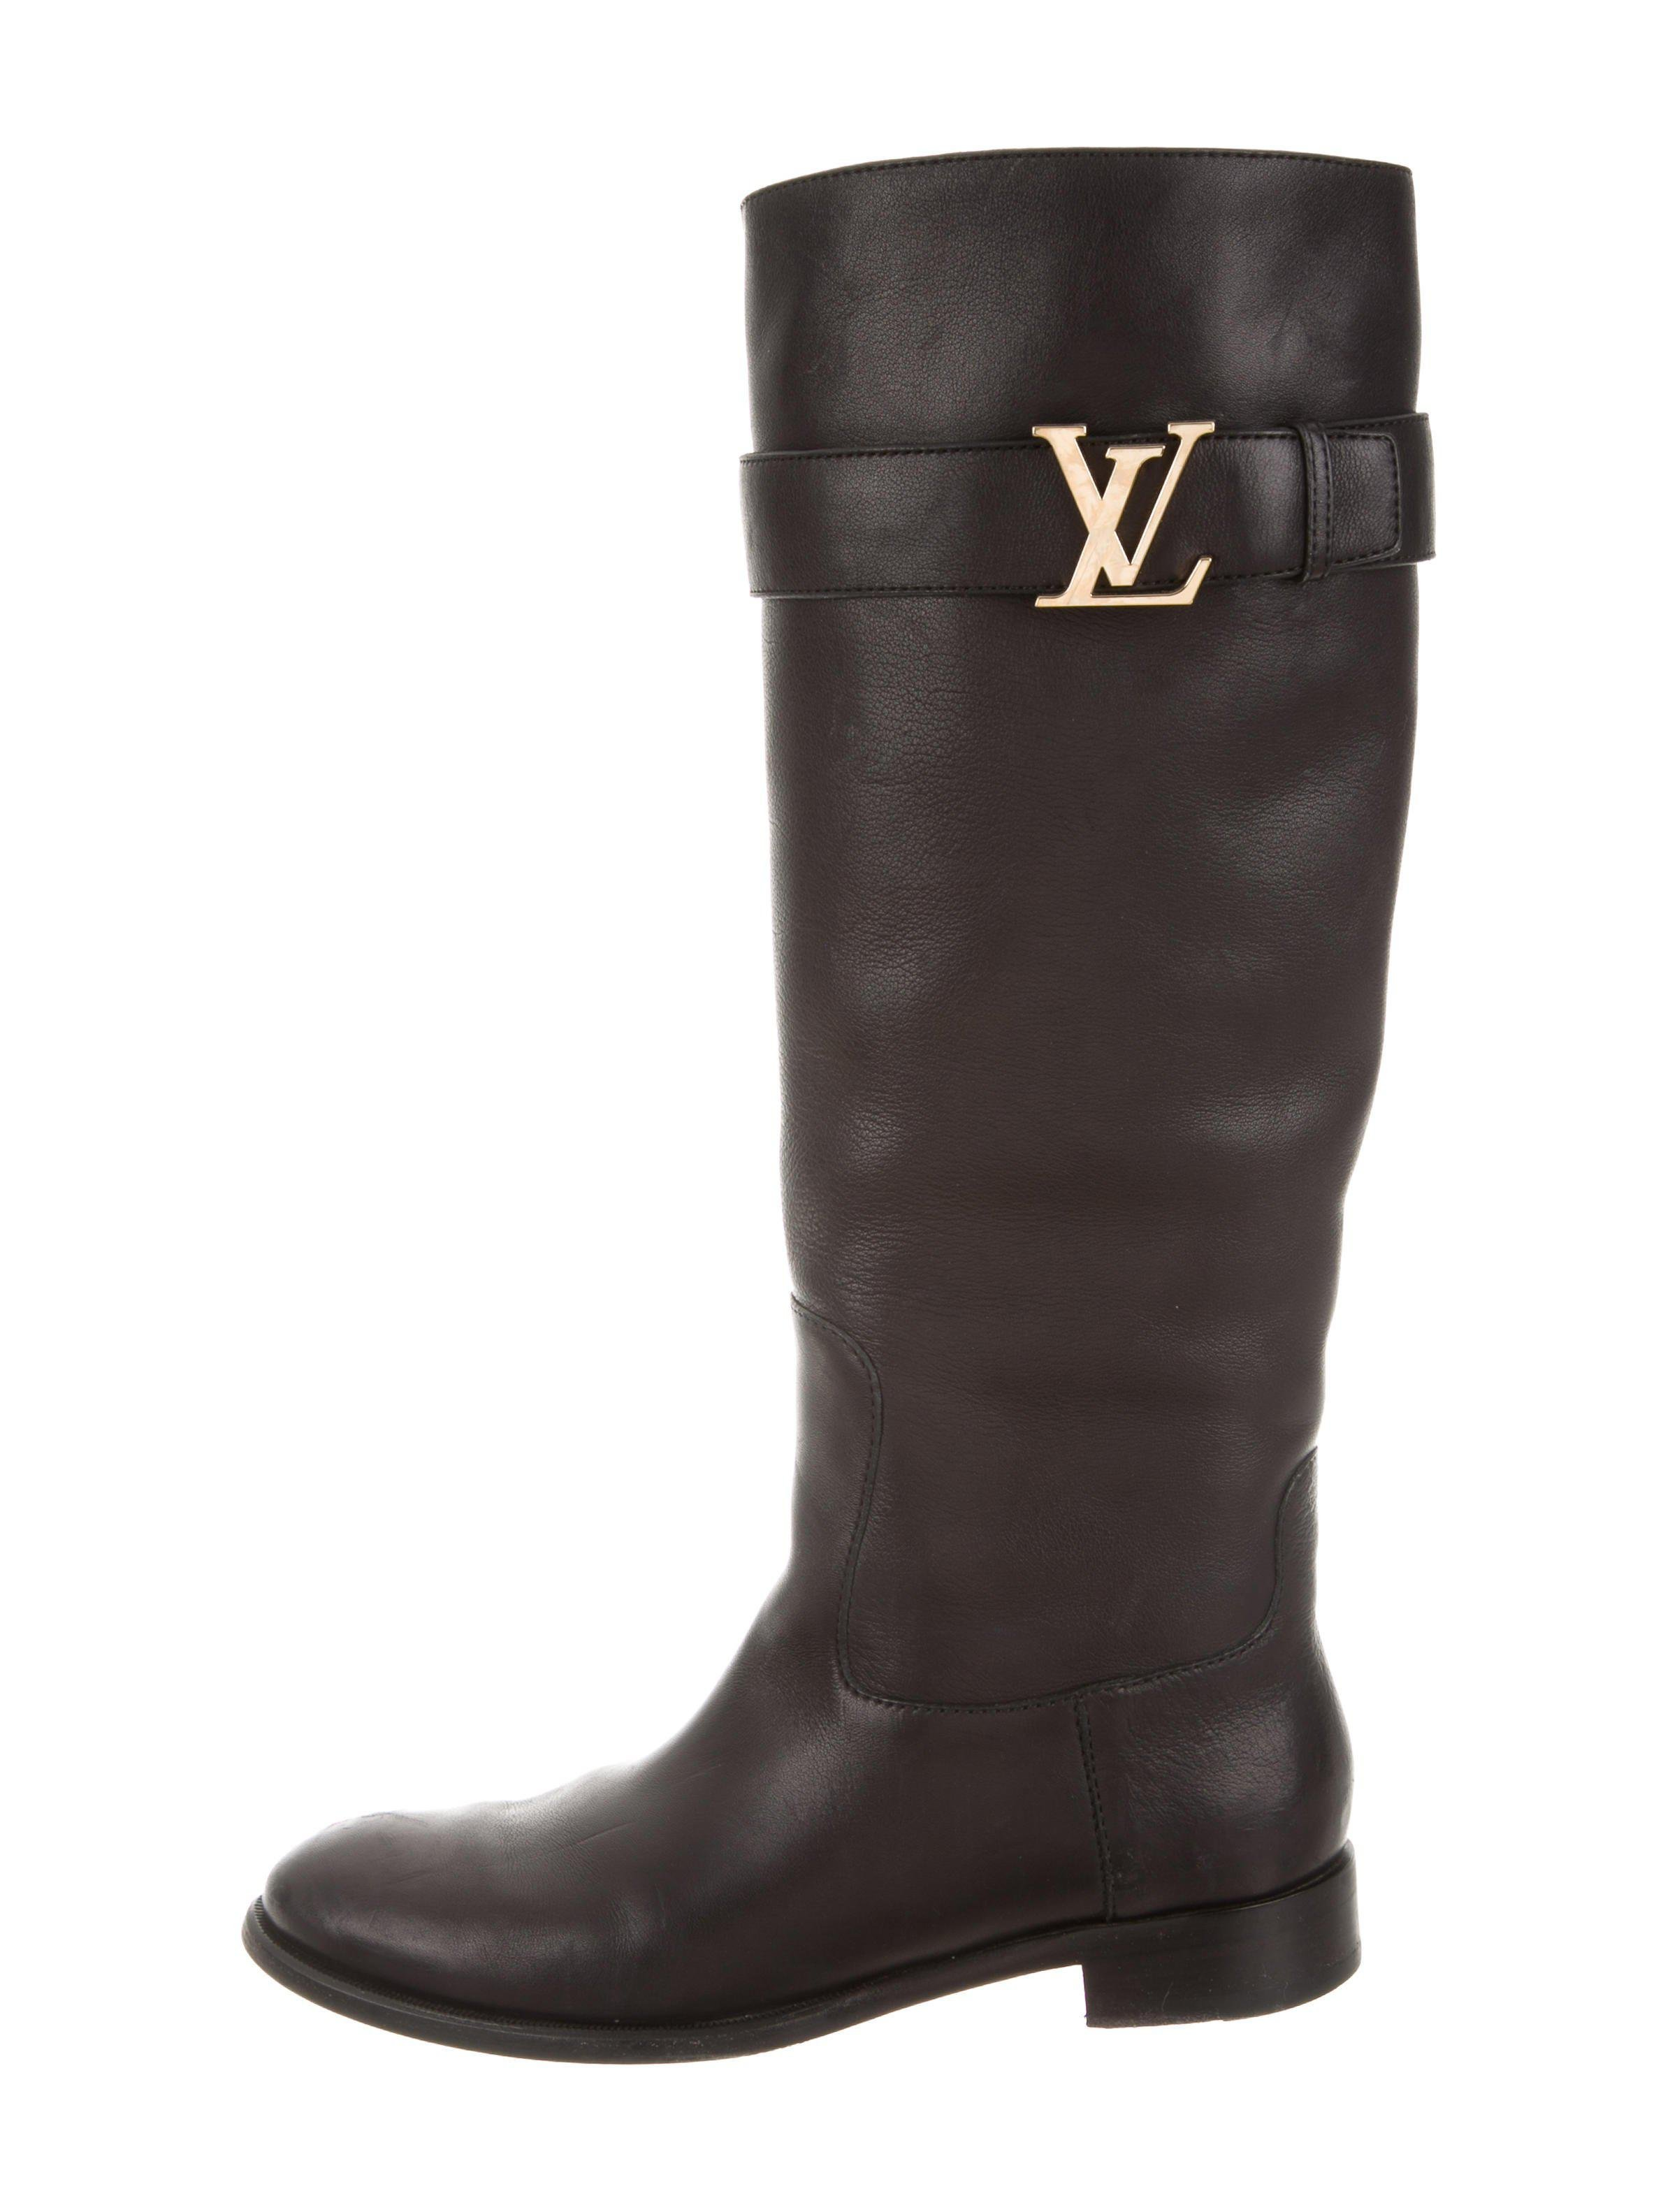 23b1ddfdb022 Lyst - Louis Vuitton Logo Leather Boots Black in Metallic